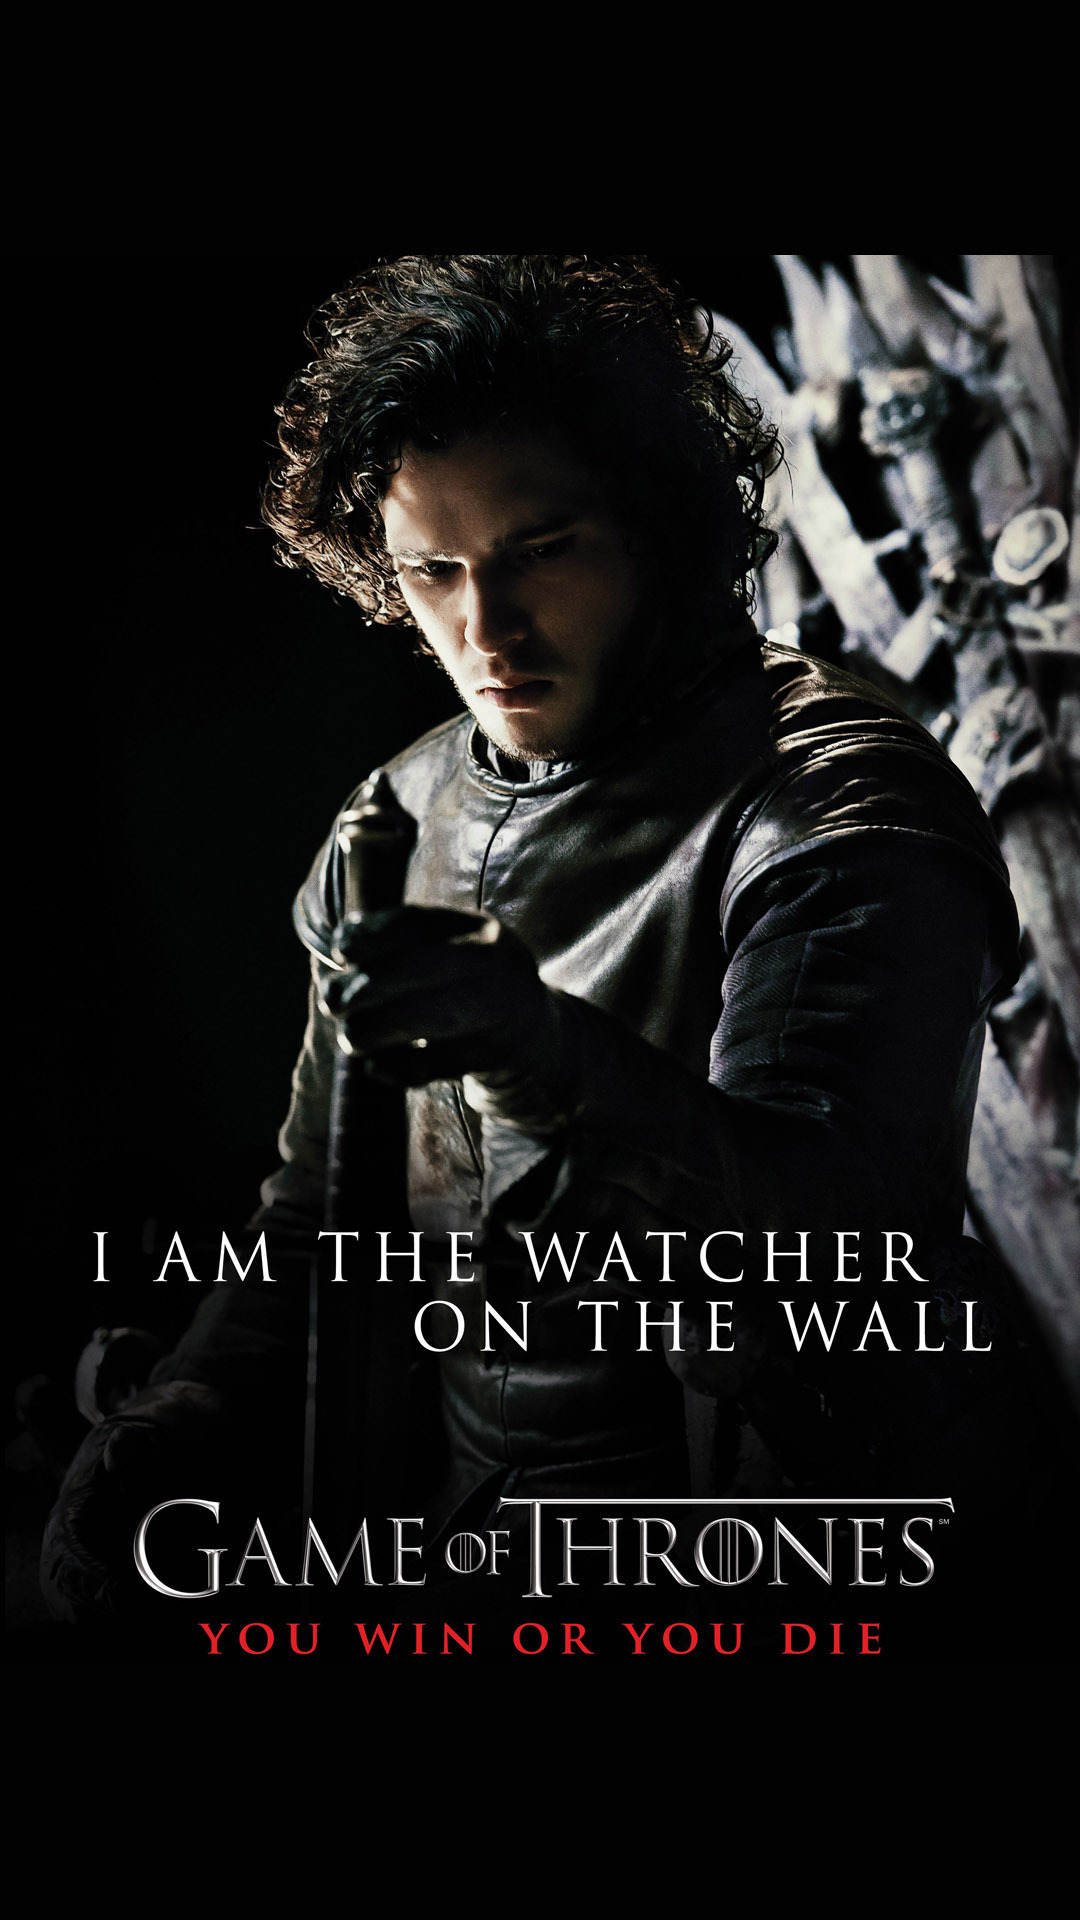 Breaking Bad Hd Iphone Wallpaper Jon Snow Alive Best Htc Wallpaper